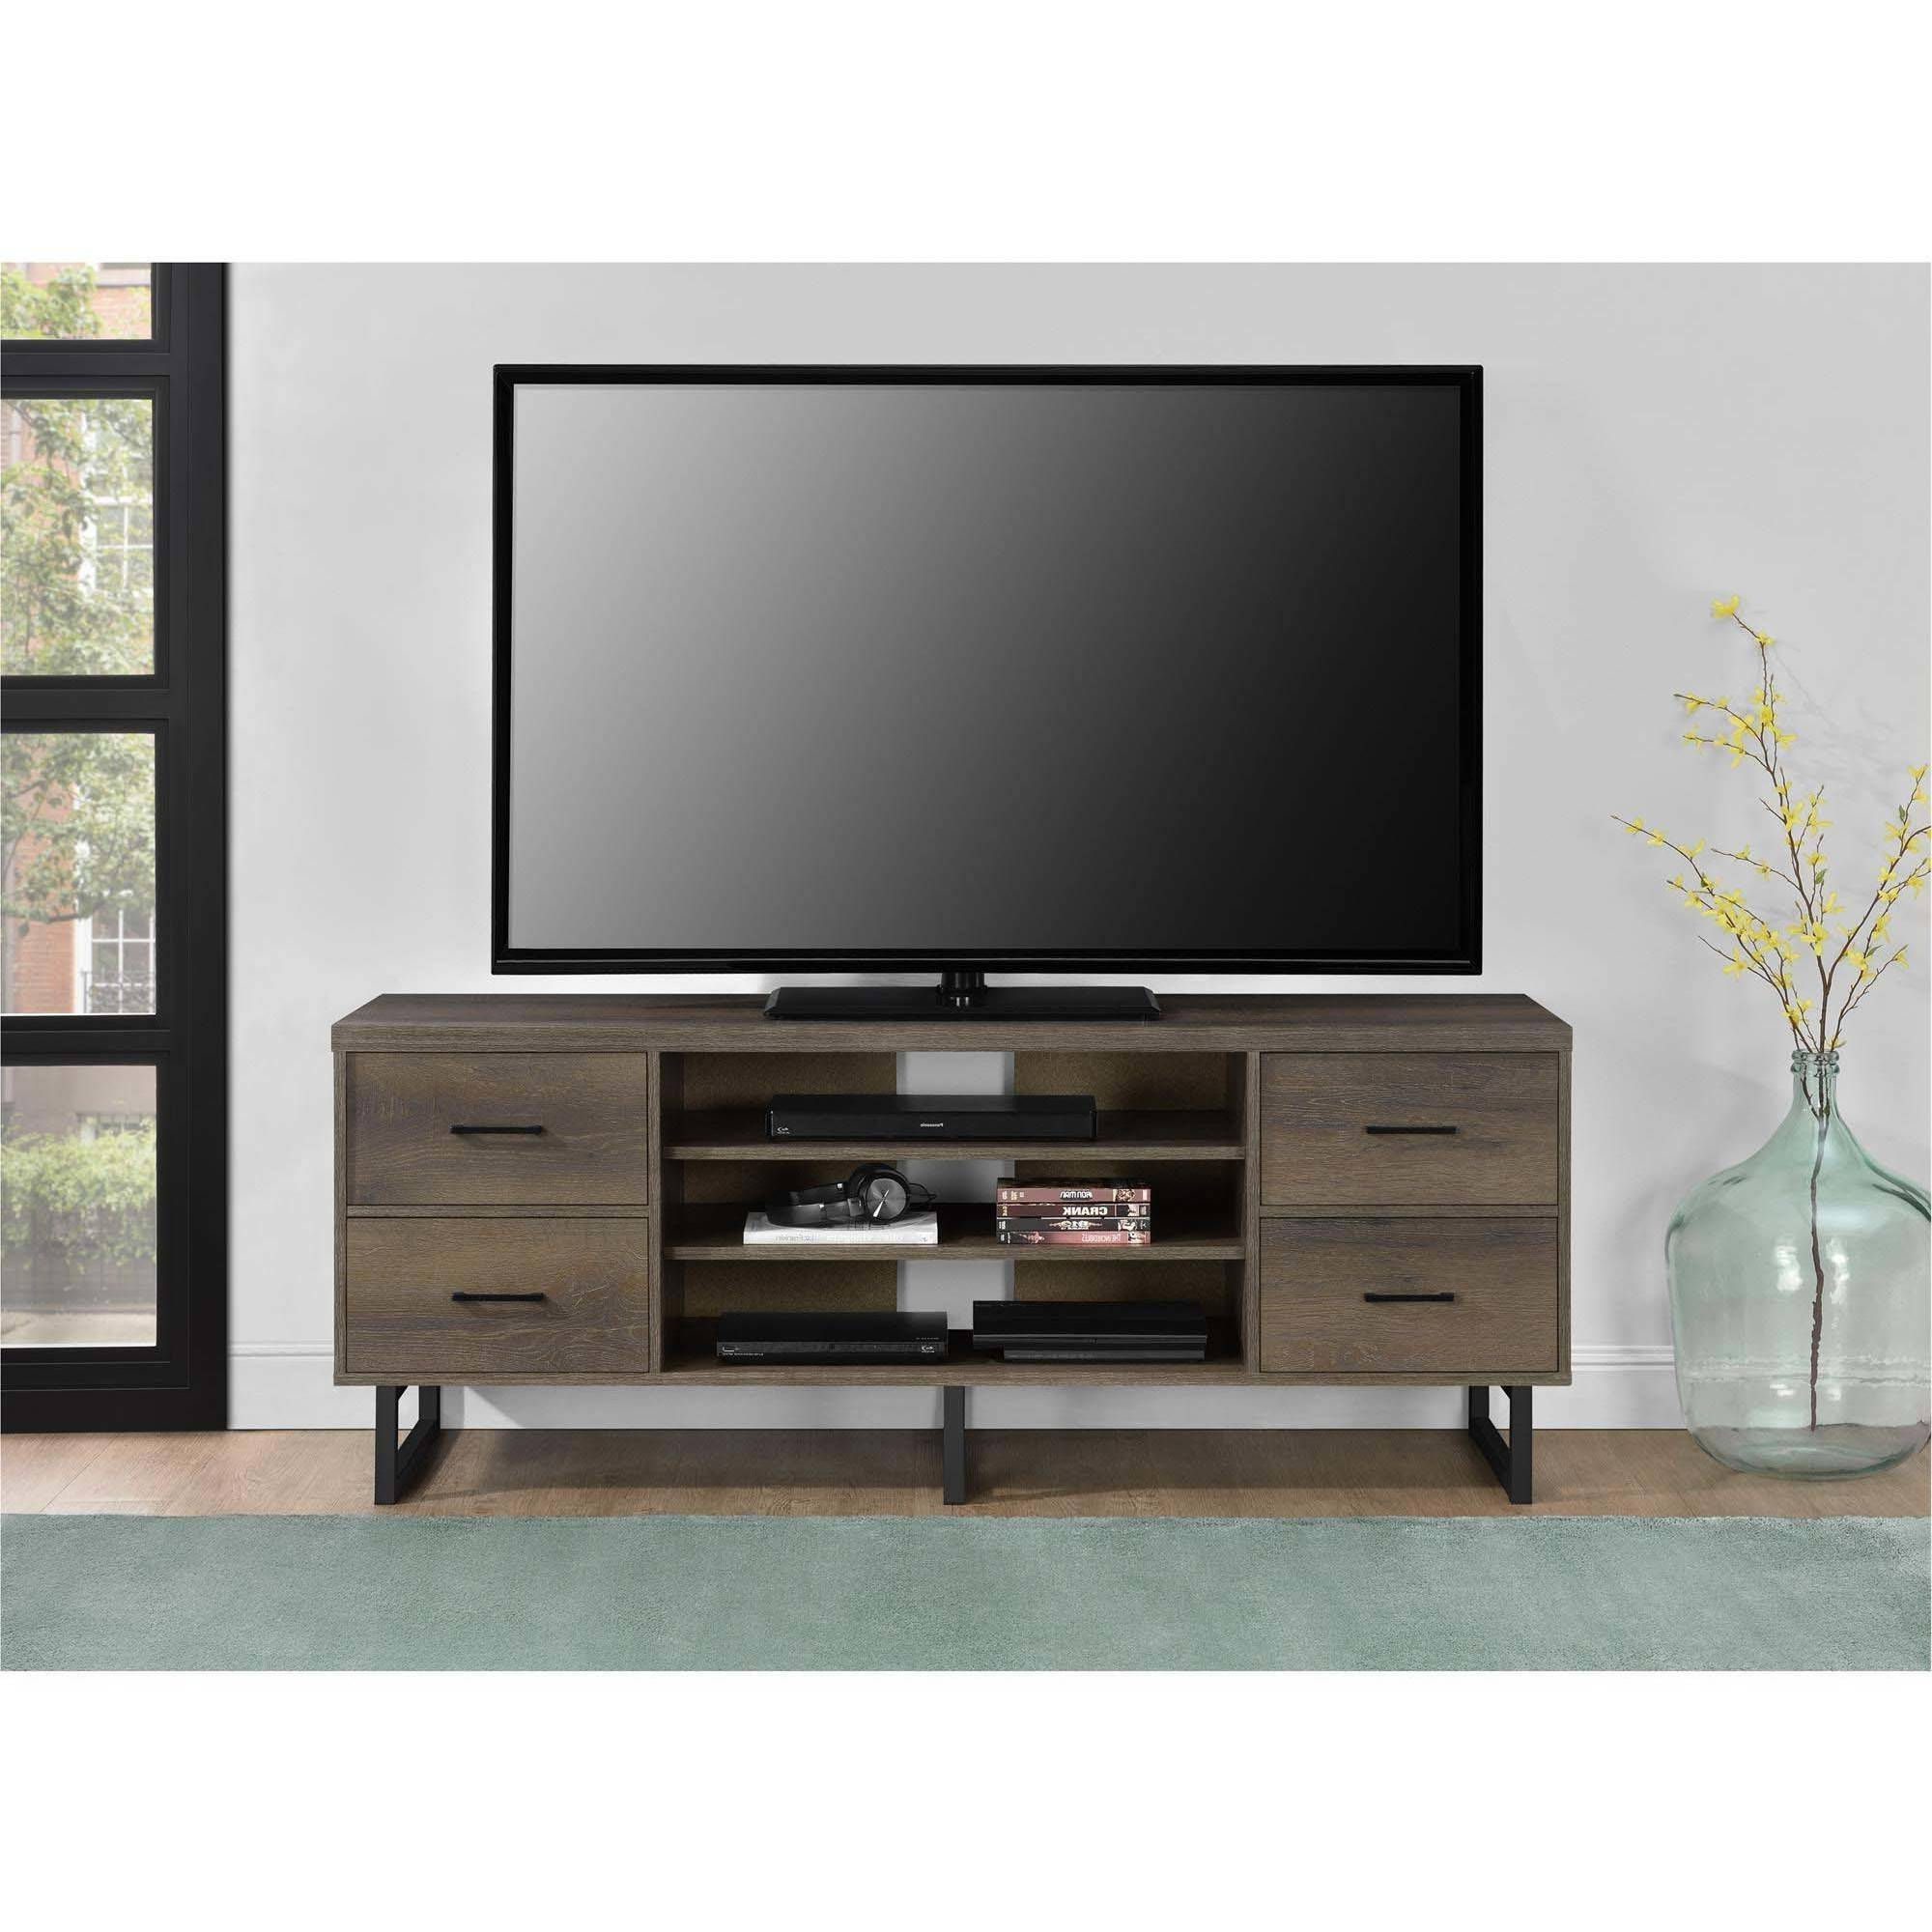 Ameriwood Home Candon Tv Stand With Bins For Tvs Up To 60 Inside Bromley Extra Wide Oak Tv Stands (View 15 of 20)